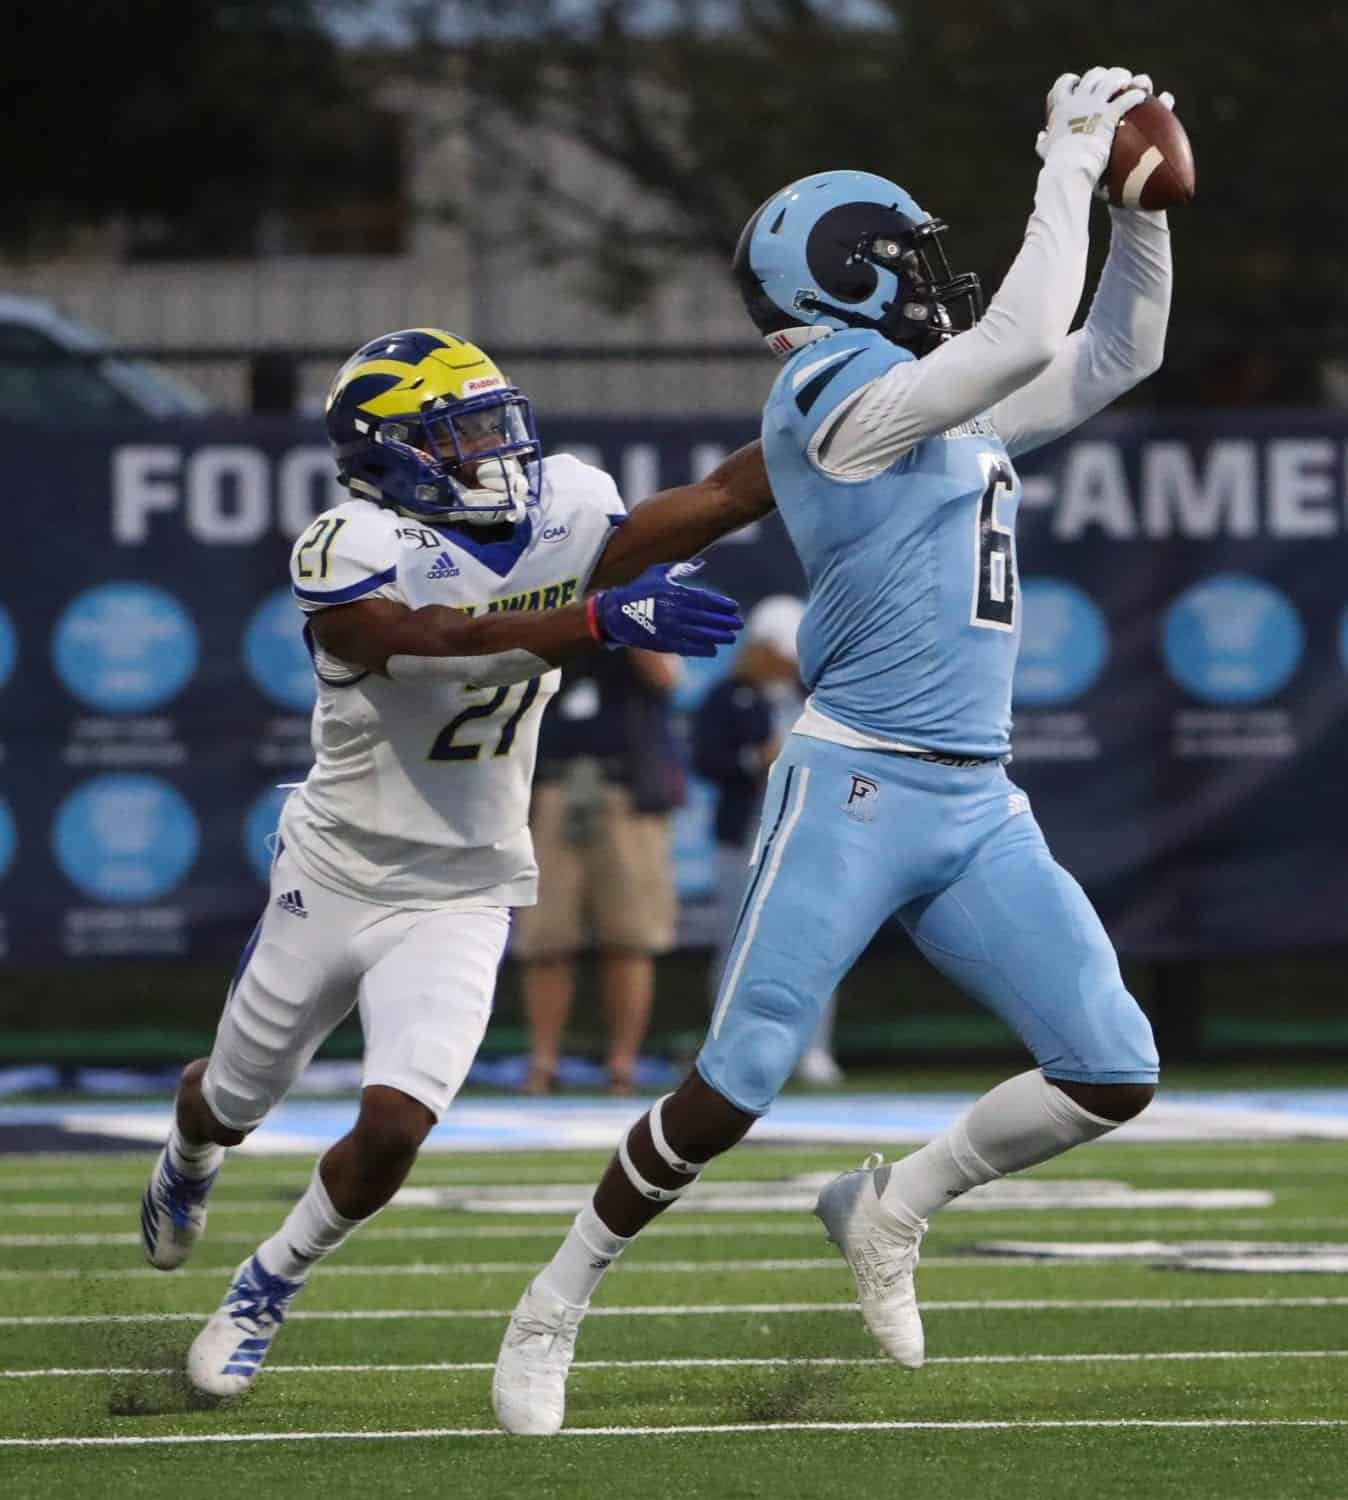 Best Nfl Teams 2020.2020 Nfl Draft Wide Receiver Aaron Parker Has The Goods Pfn